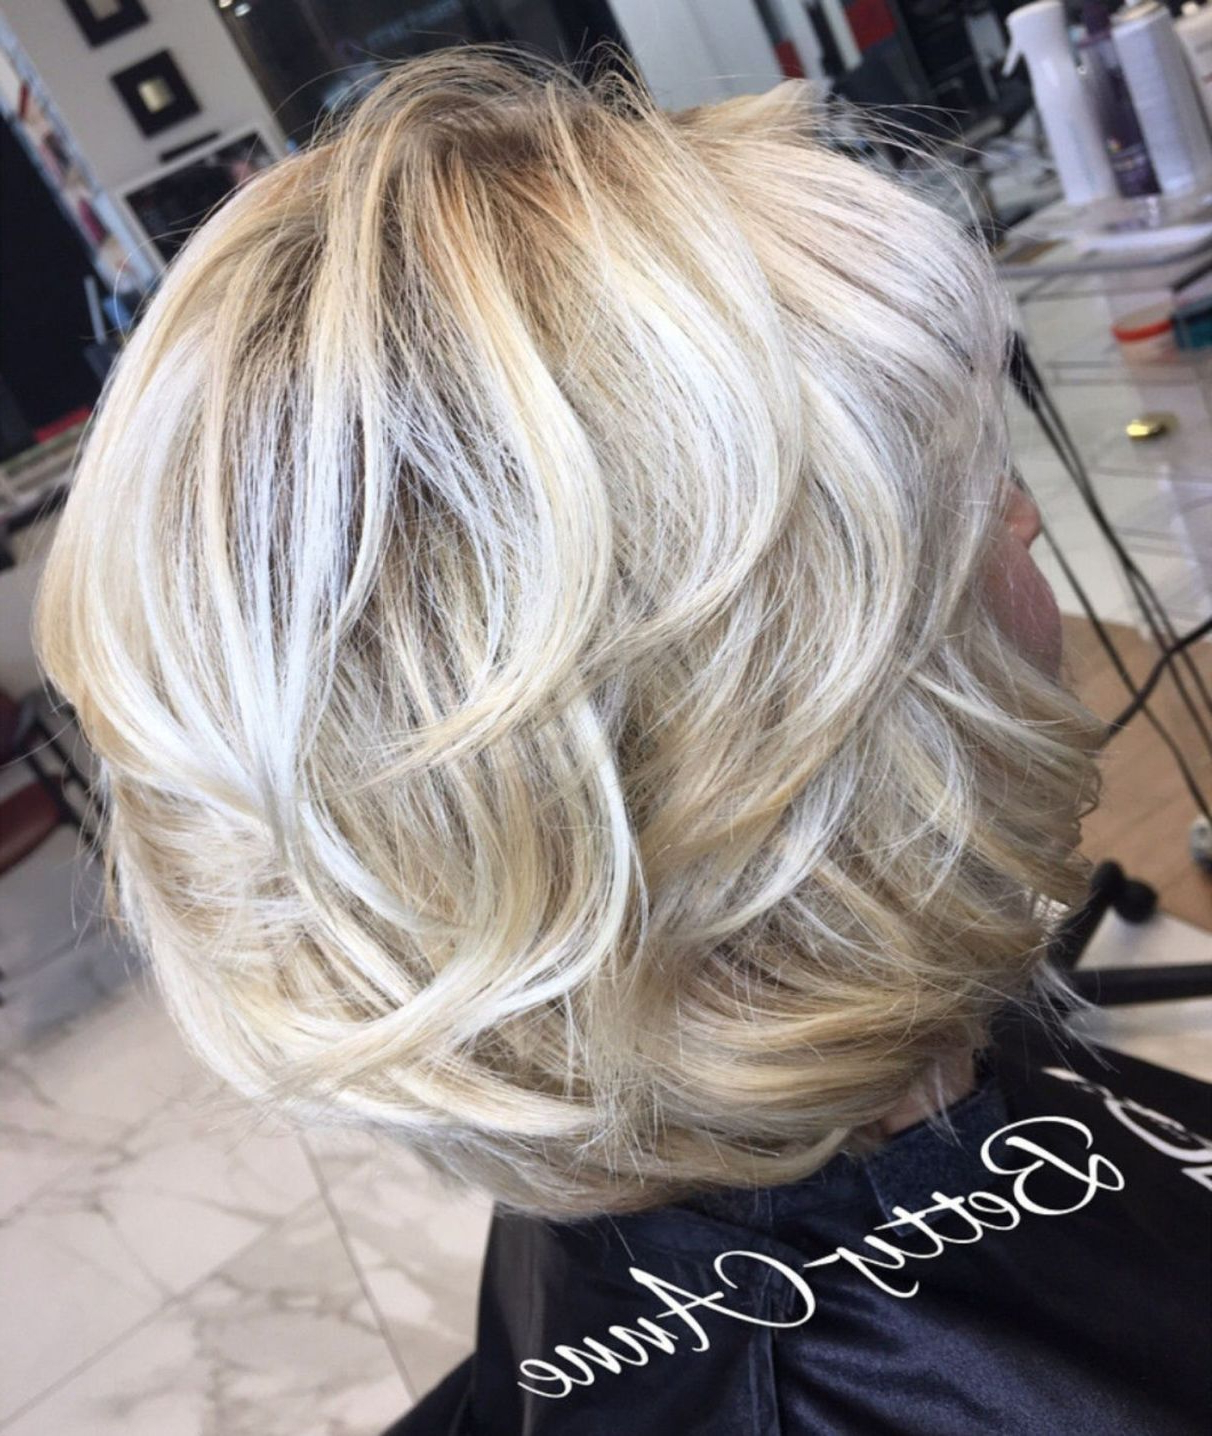 80 Best Modern Haircuts And Hairstyles For Women Over 50 In 2018 Intended For Dynamic Tousled Blonde Bob Hairstyles With Dark Underlayer (Gallery 18 of 20)